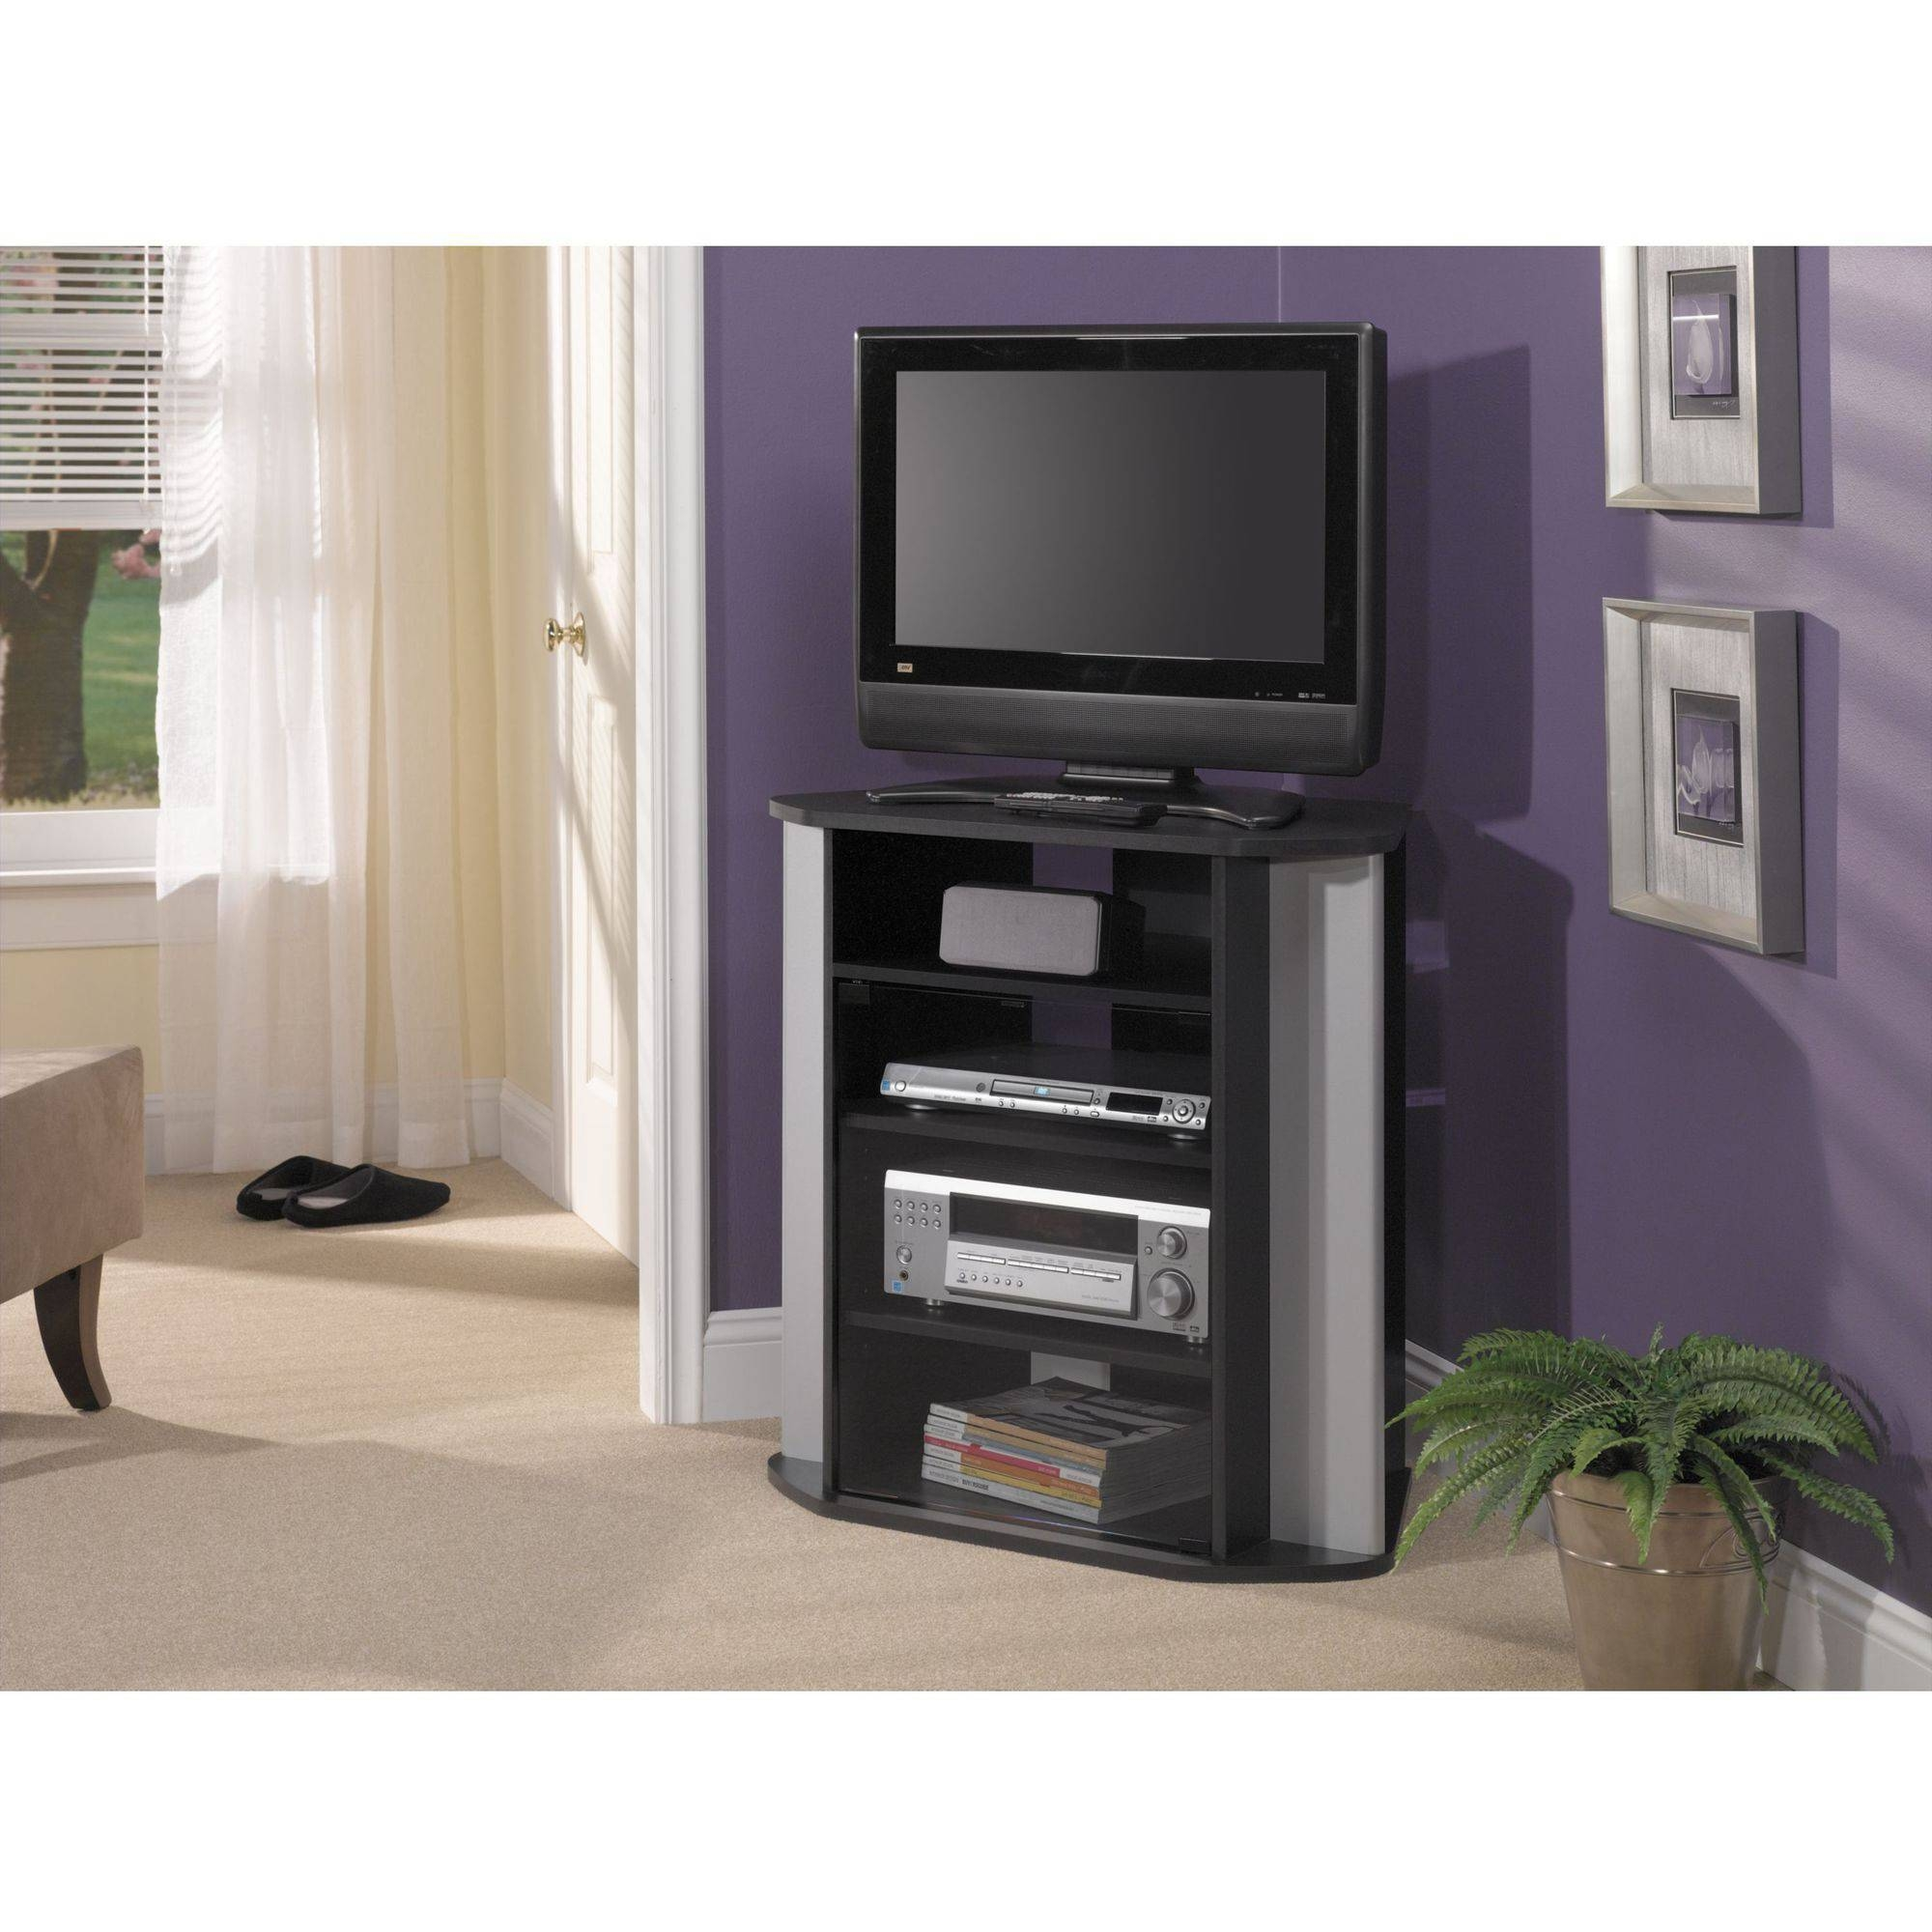 Wall Units: Amazing Entertainment Centers Walmart Entertainment for Tall Tv Cabinets Corner Unit (Image 15 of 15)